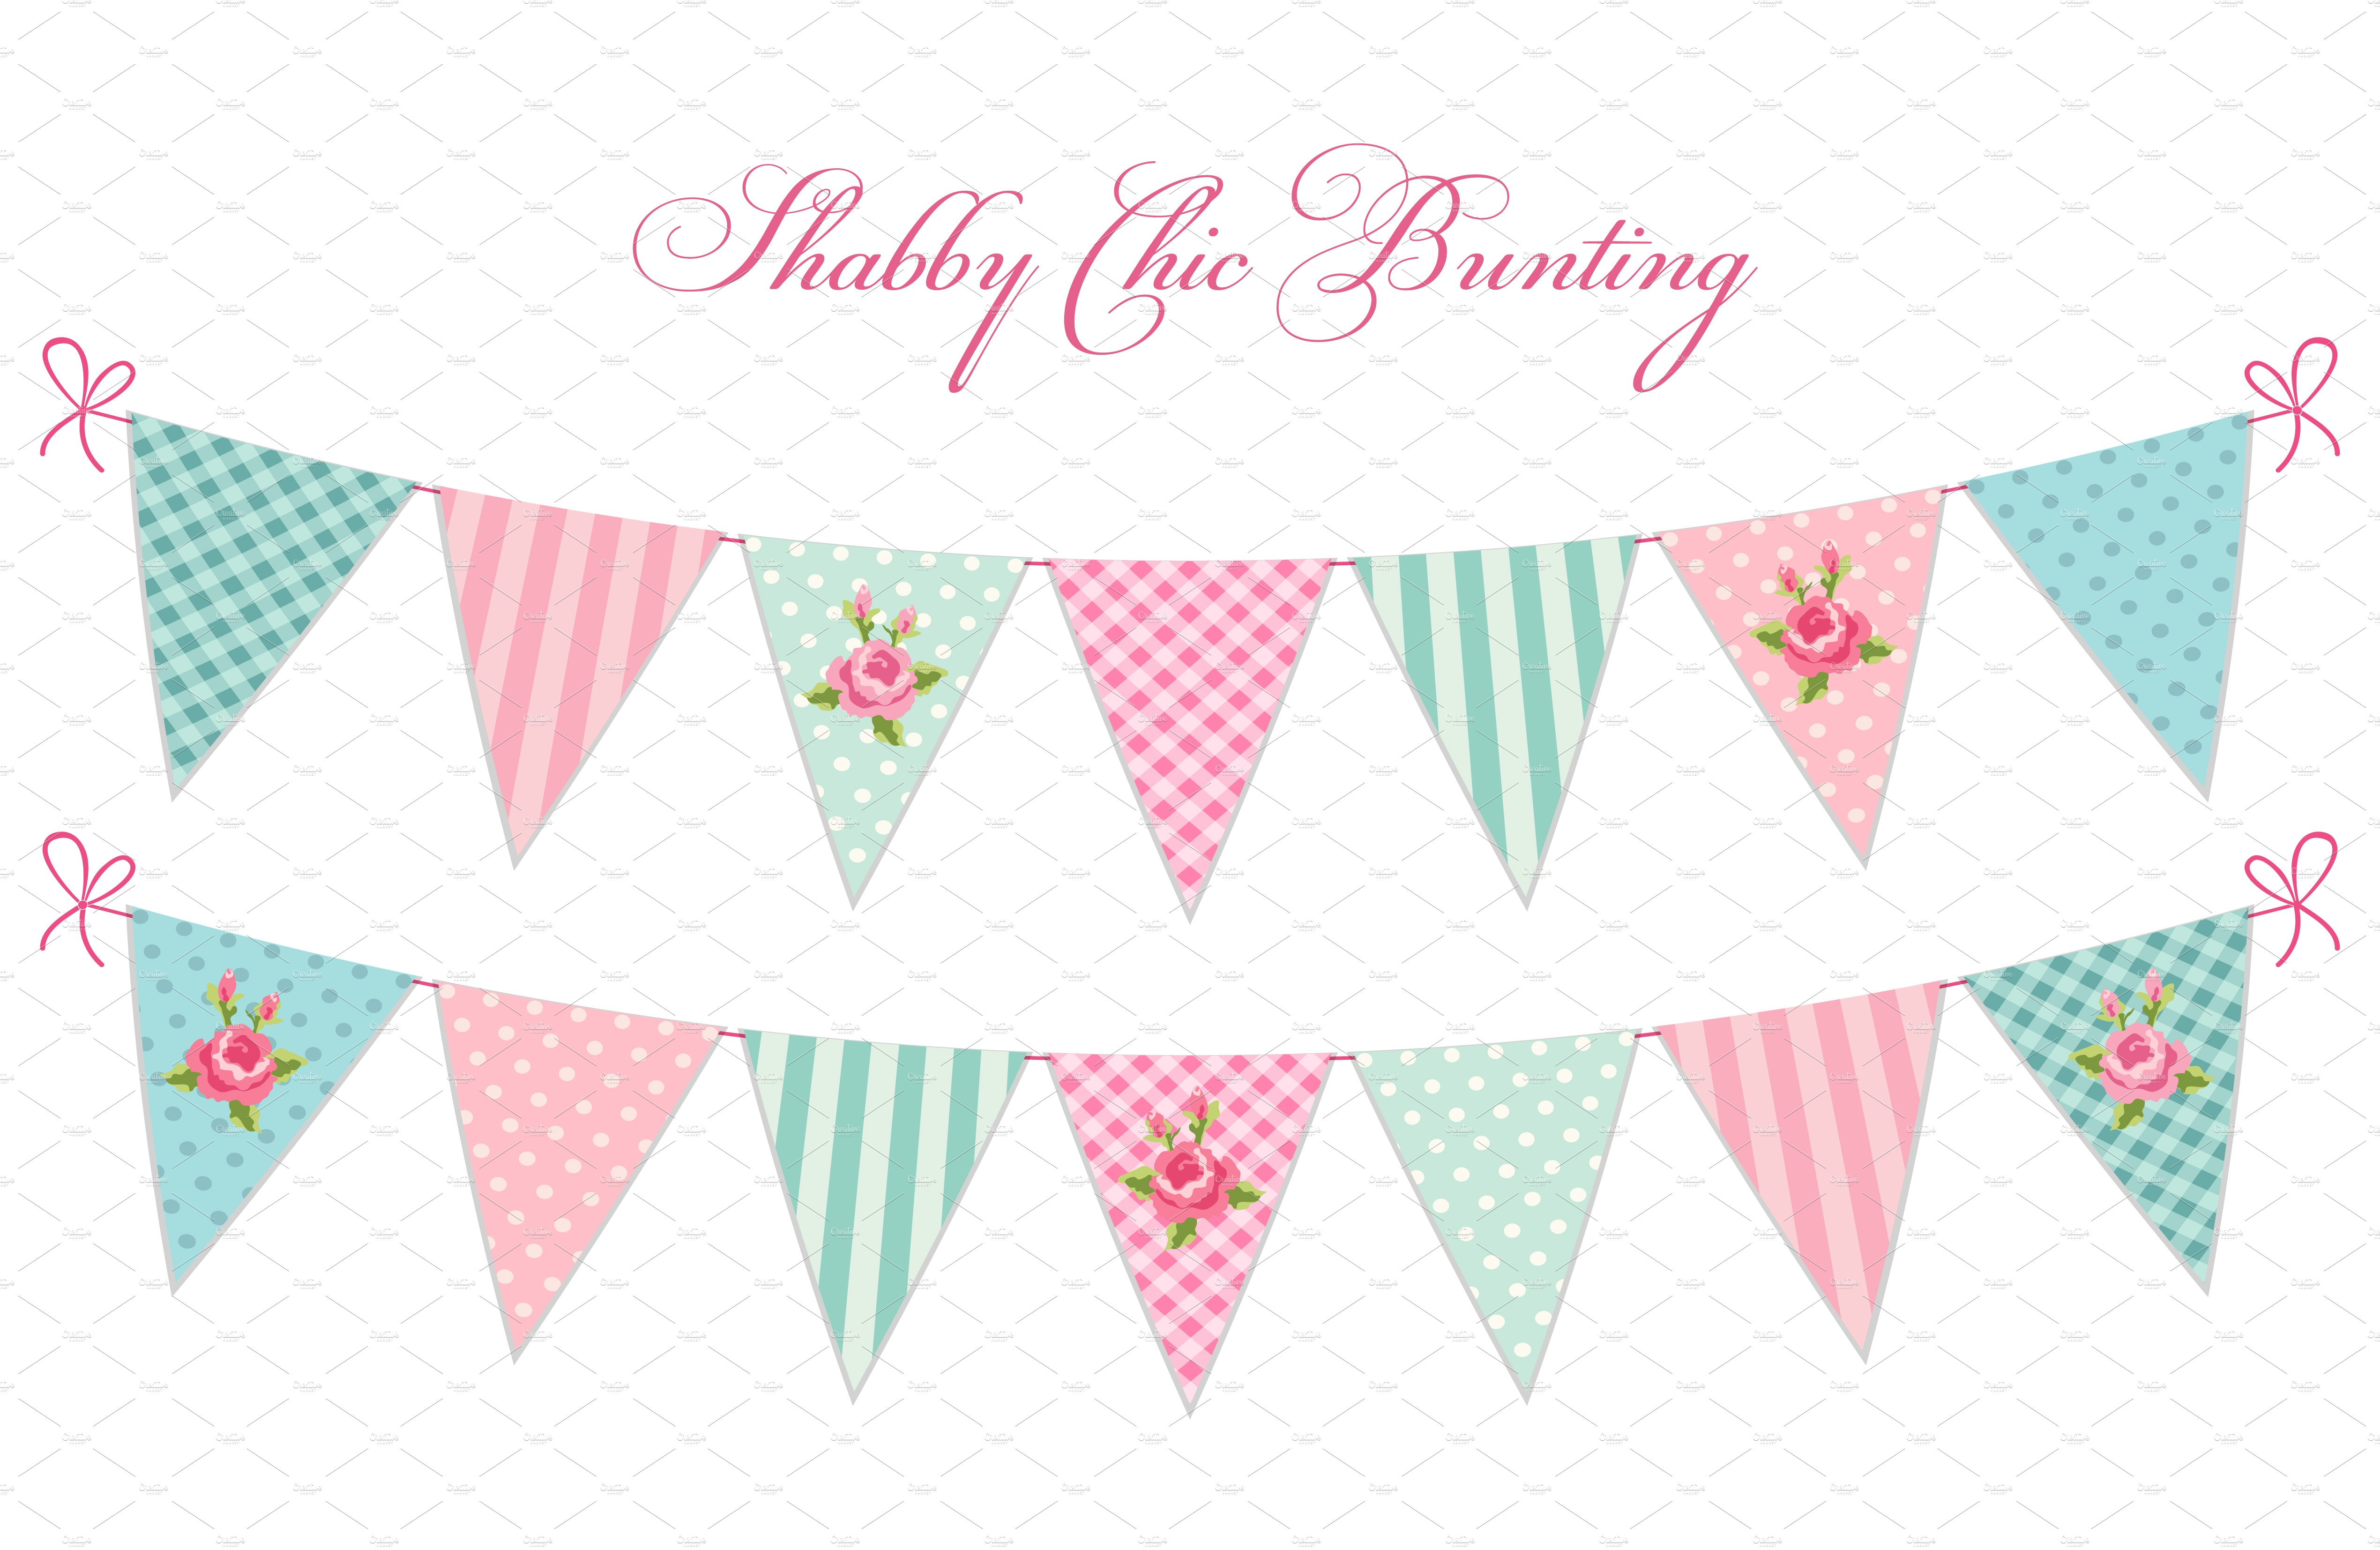 shabby chic bunting - photo #20